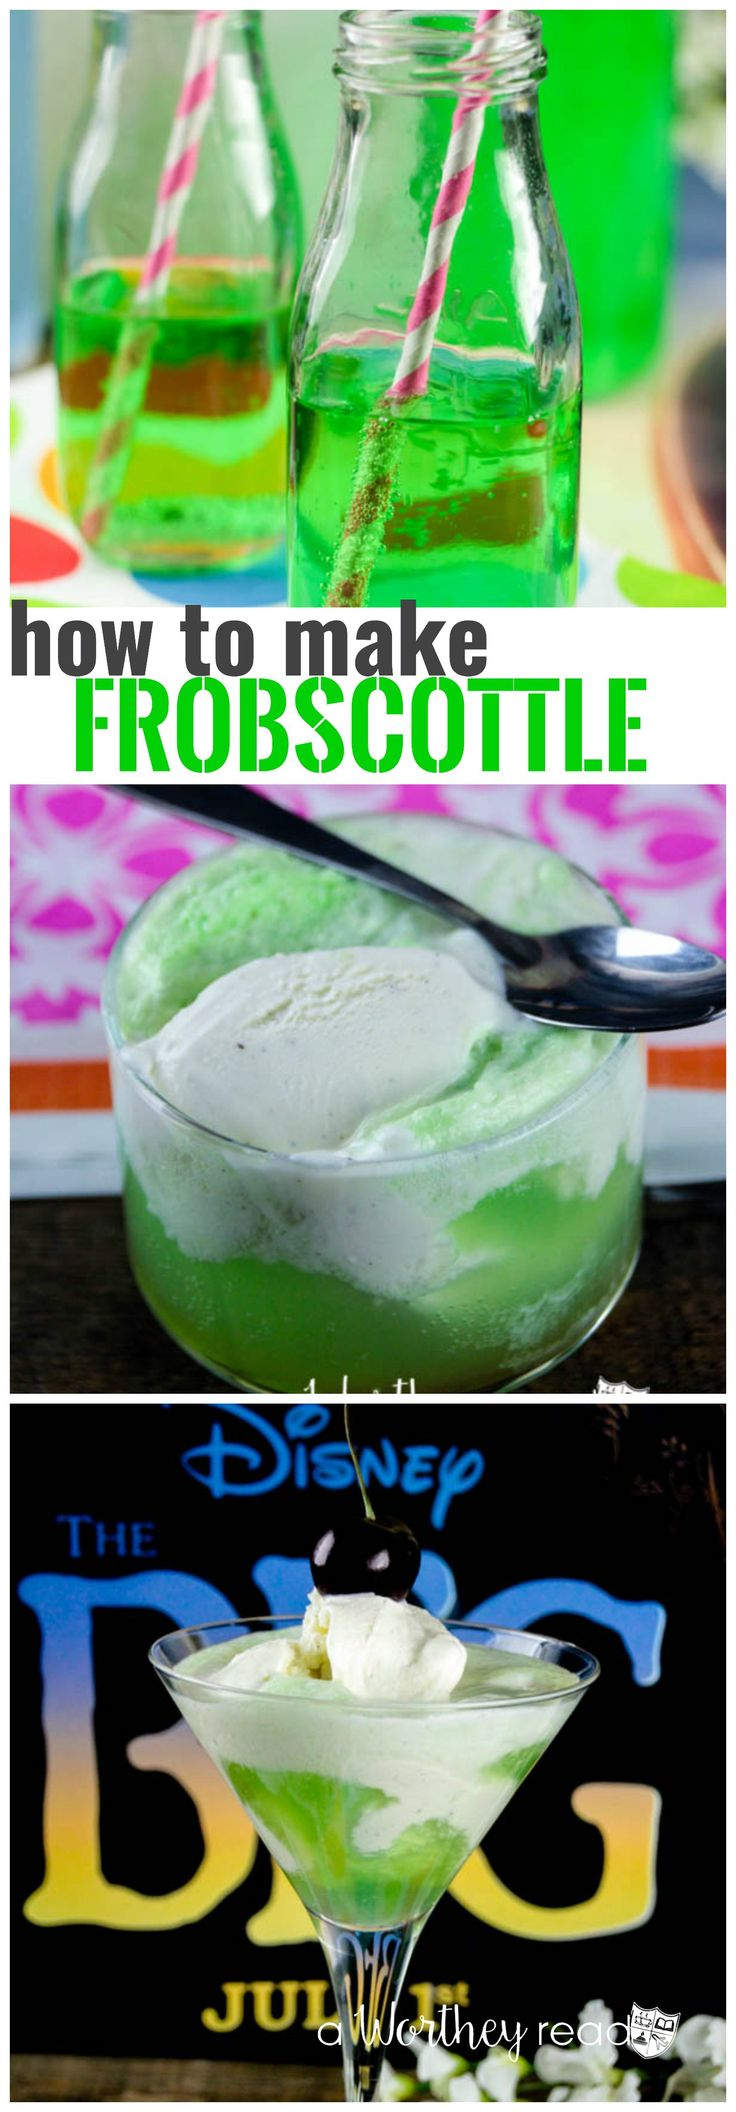 How to make Frobscottle from the BFG movie - Three different Frobscottle recipe…